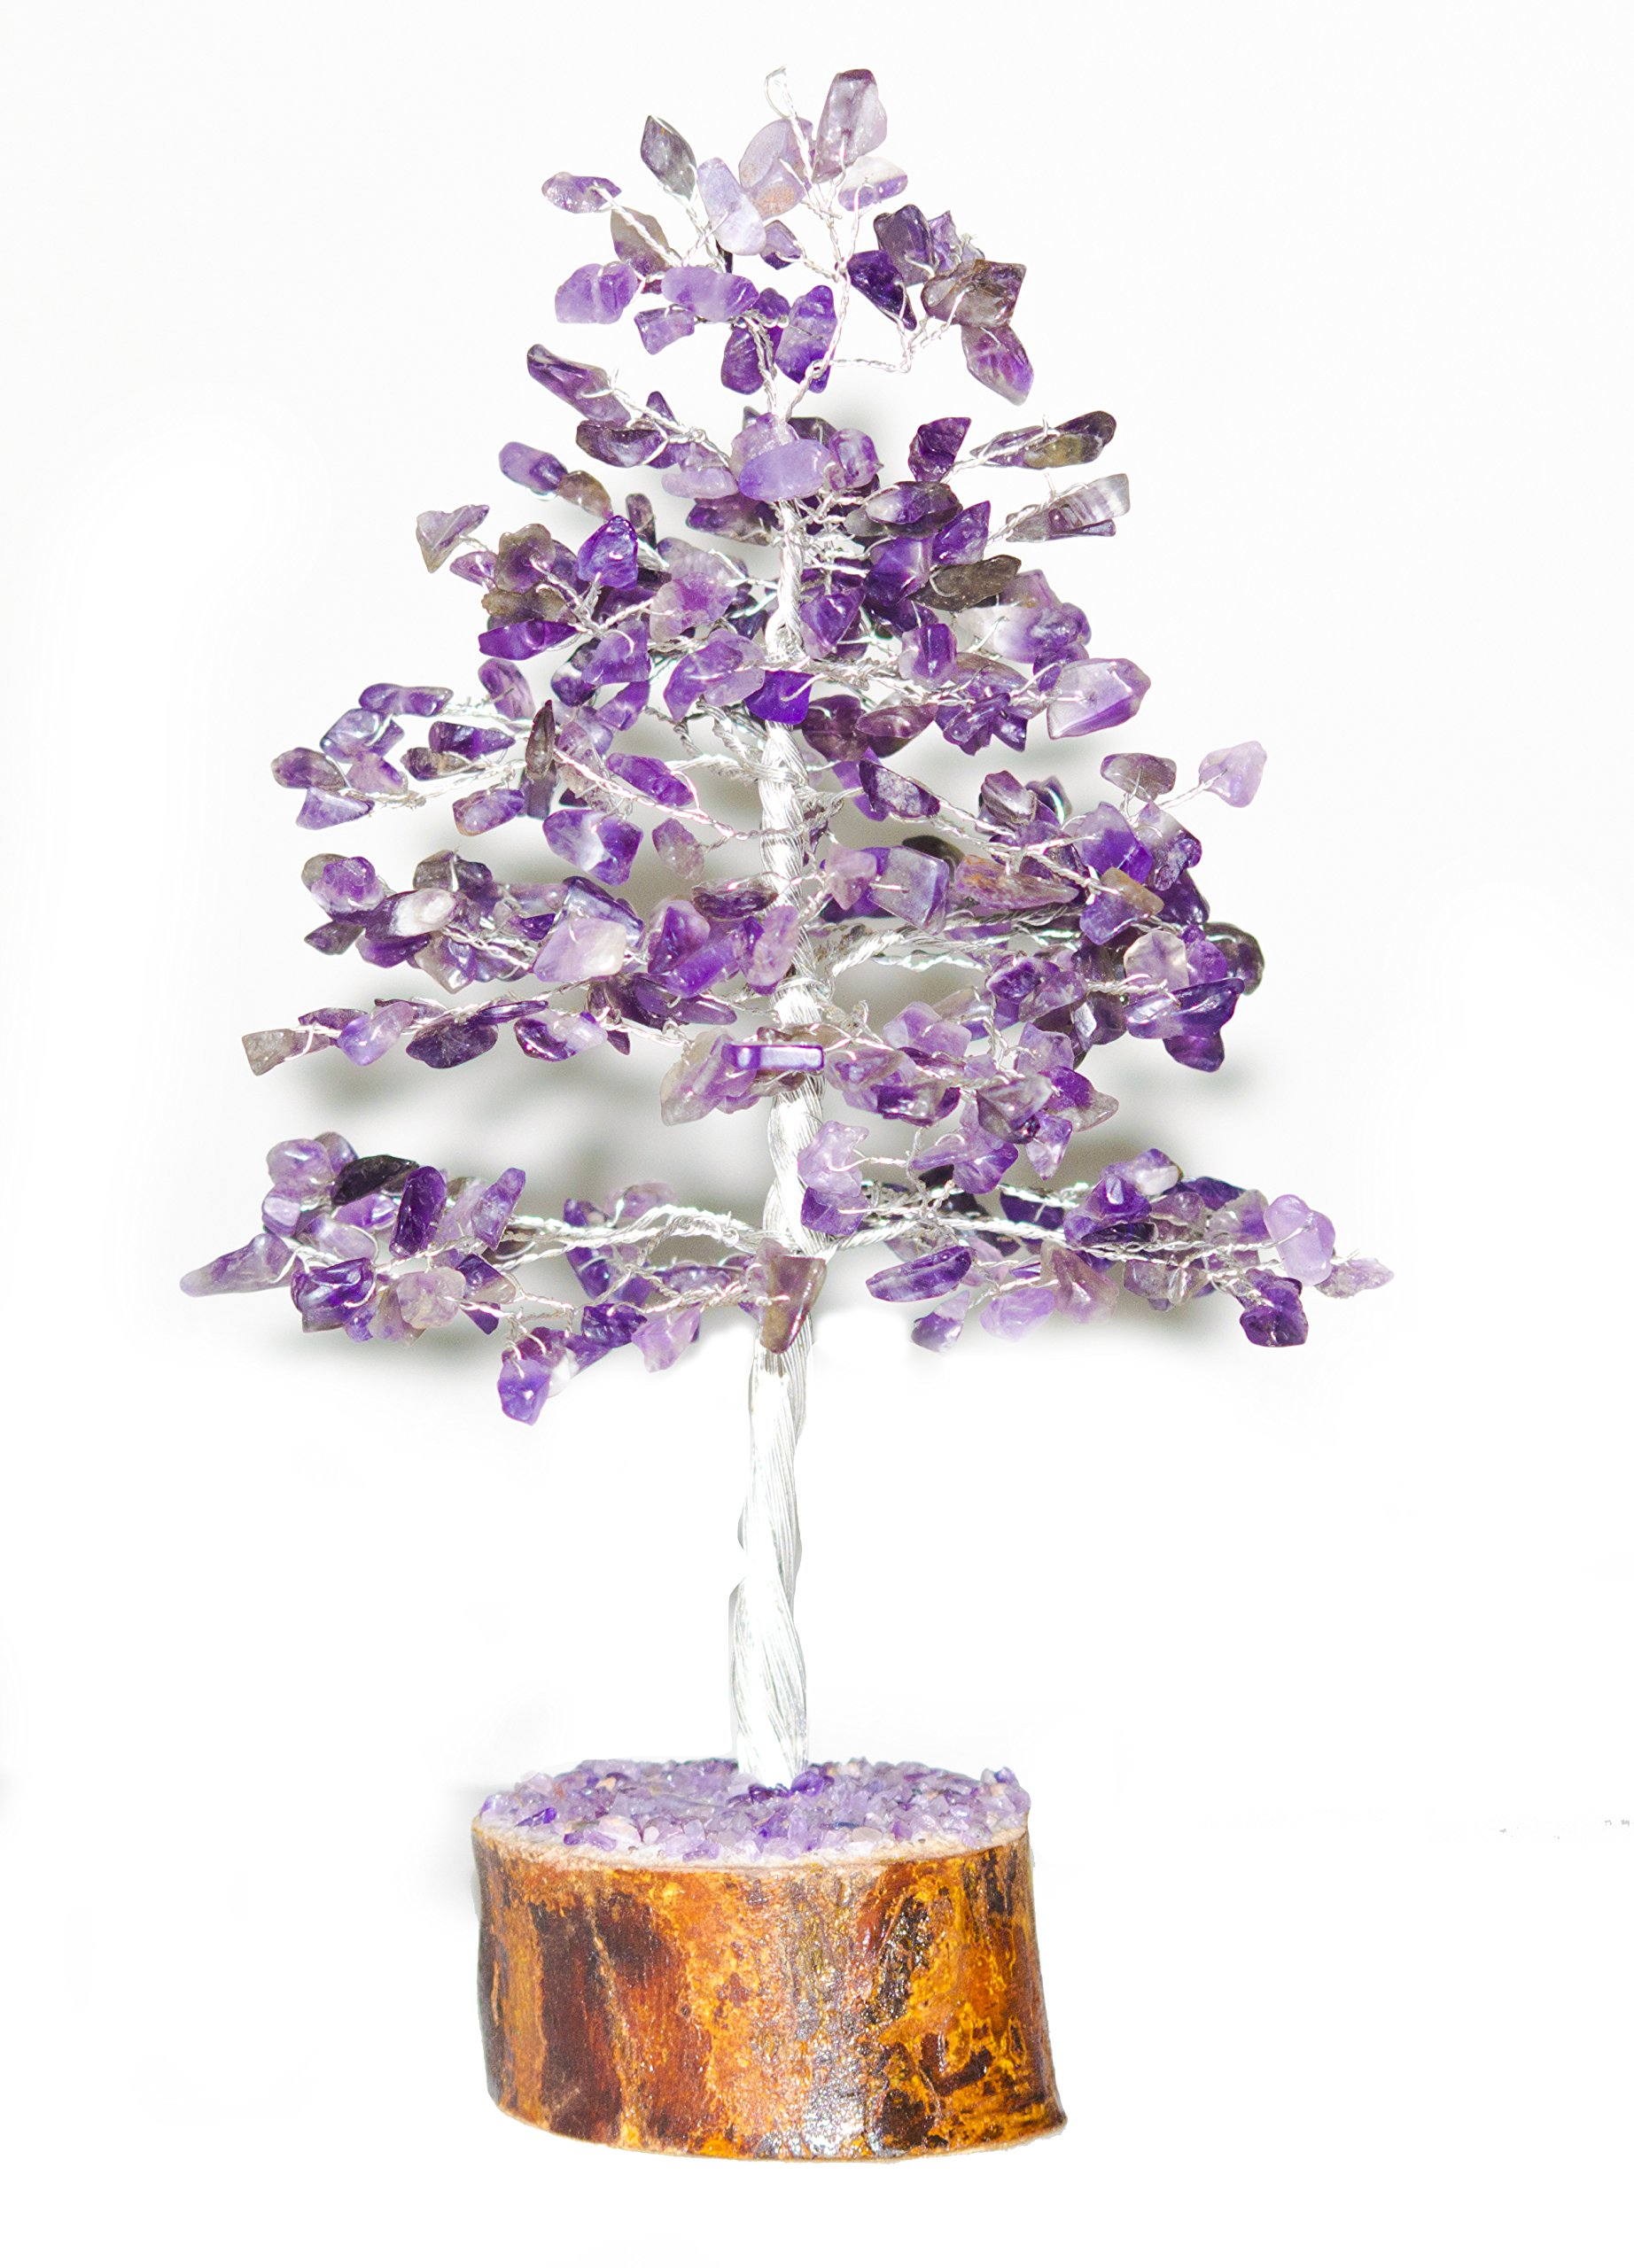 Crocon Natural Color Healing Gemstone Crystal Bonsai Fortune Money Tree for Good Luck, Wealth & Prosperity Spiritual Gift size 10 INCH (Silver Wire) (purple)